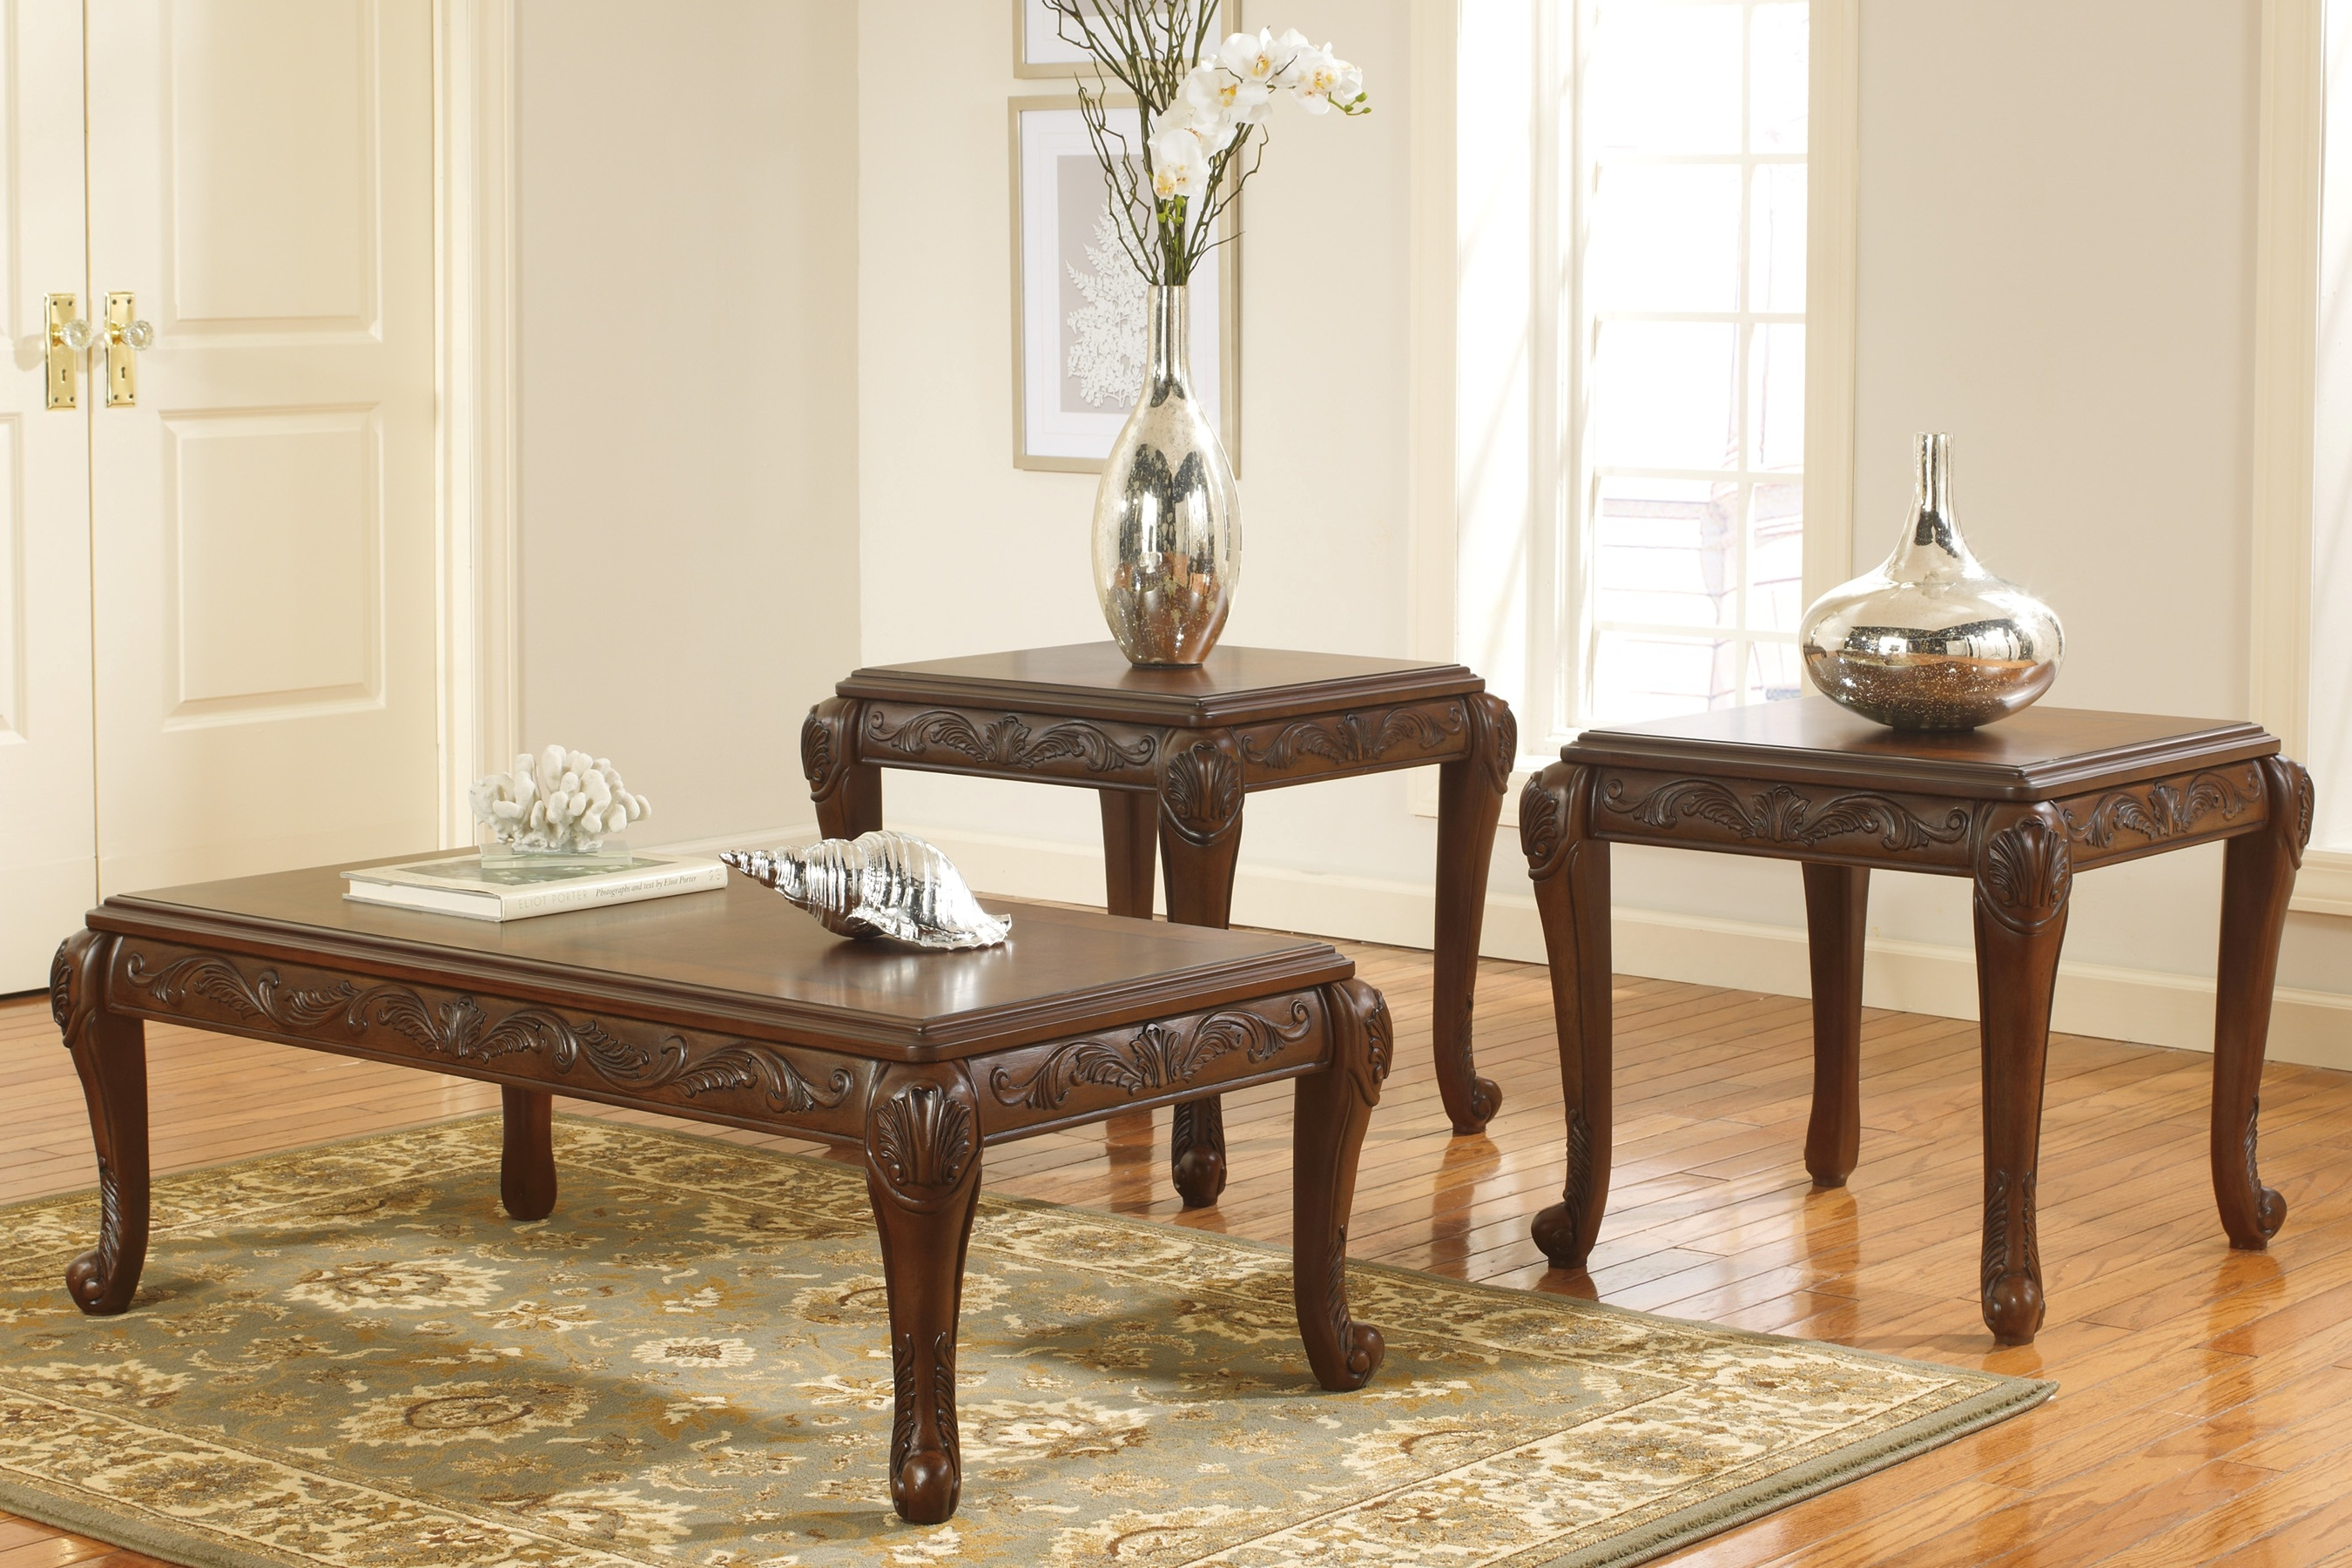 Ashley Furniture Living Room Tables Modern Buy T593 13 San Martin 3 intended for 15 Genius Ways How to Make 4 Piece Living Room Table Set